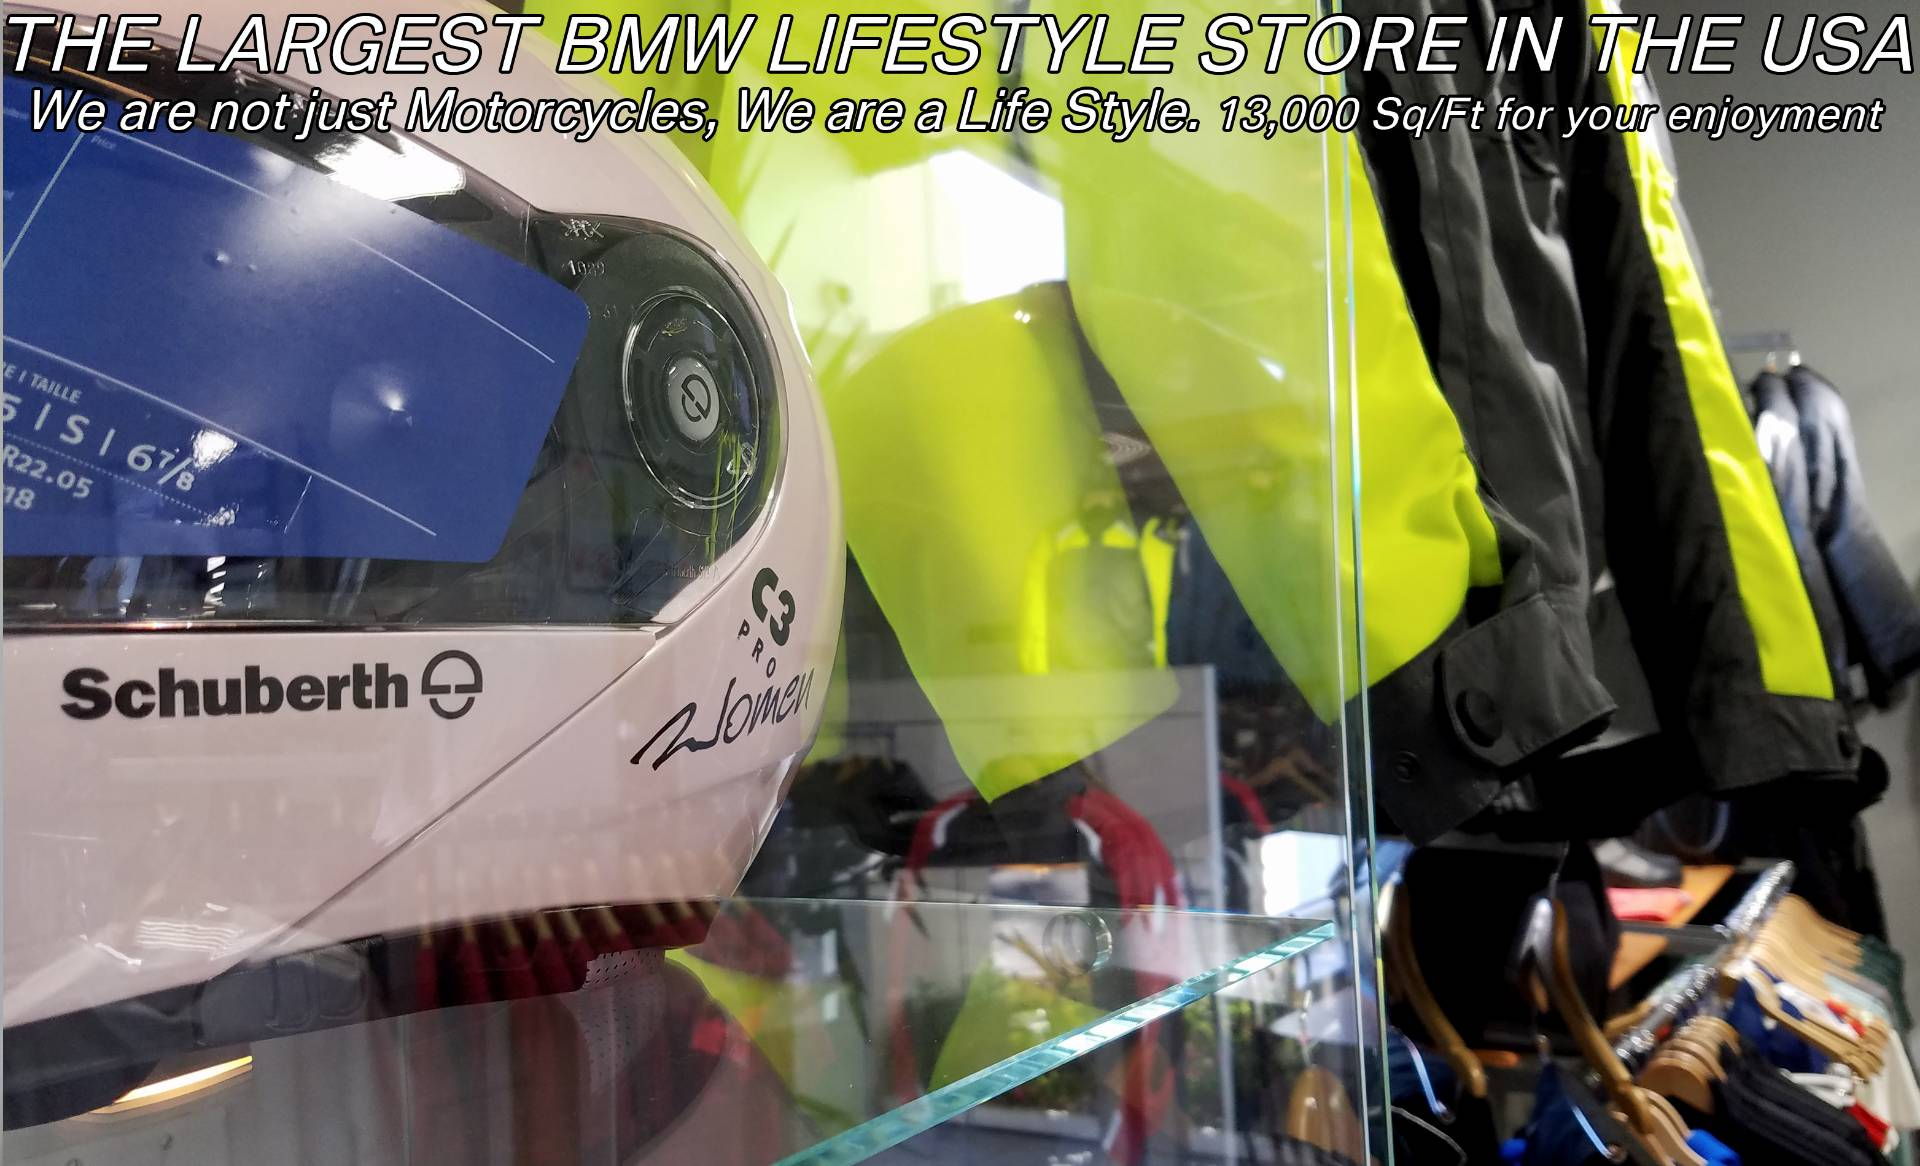 BMW Motorcycles of Miami, Motorcycles of Miami, BMW Motorcycles Miami, New Motorcycles, Used Motorcycles, Pre owned Motorcycles